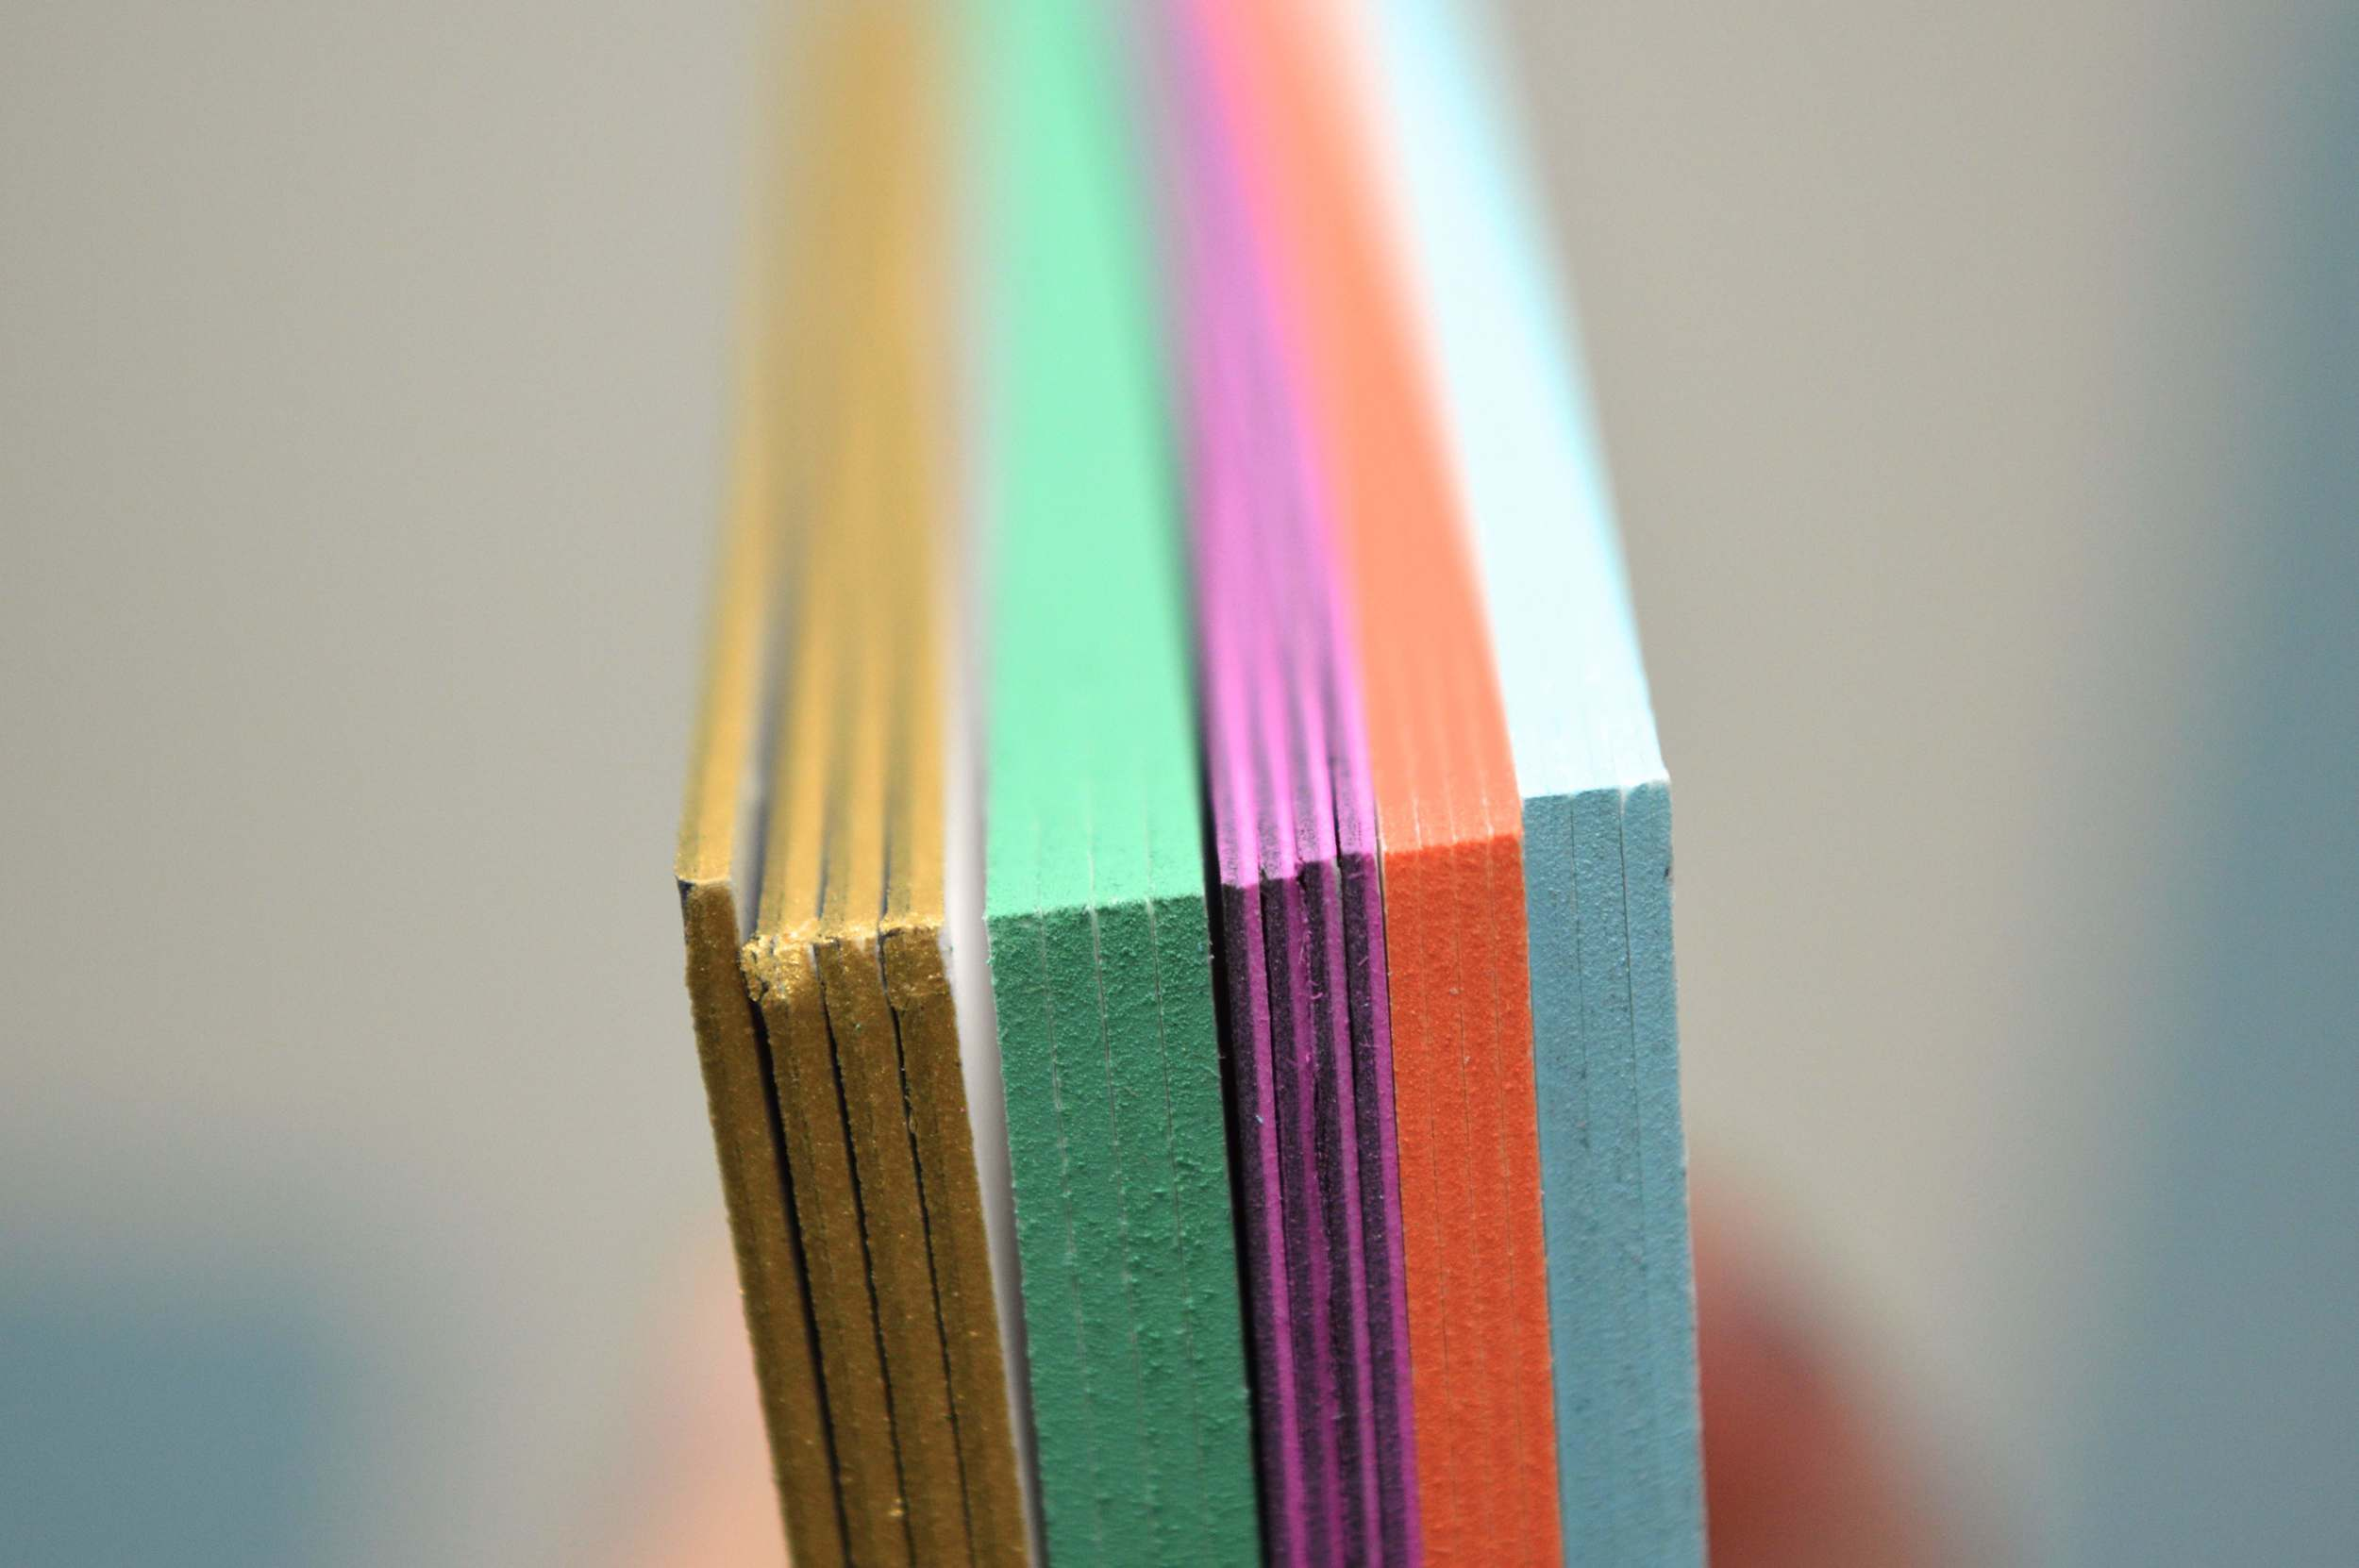 We can edge tint in any color ink. The thicker the better.